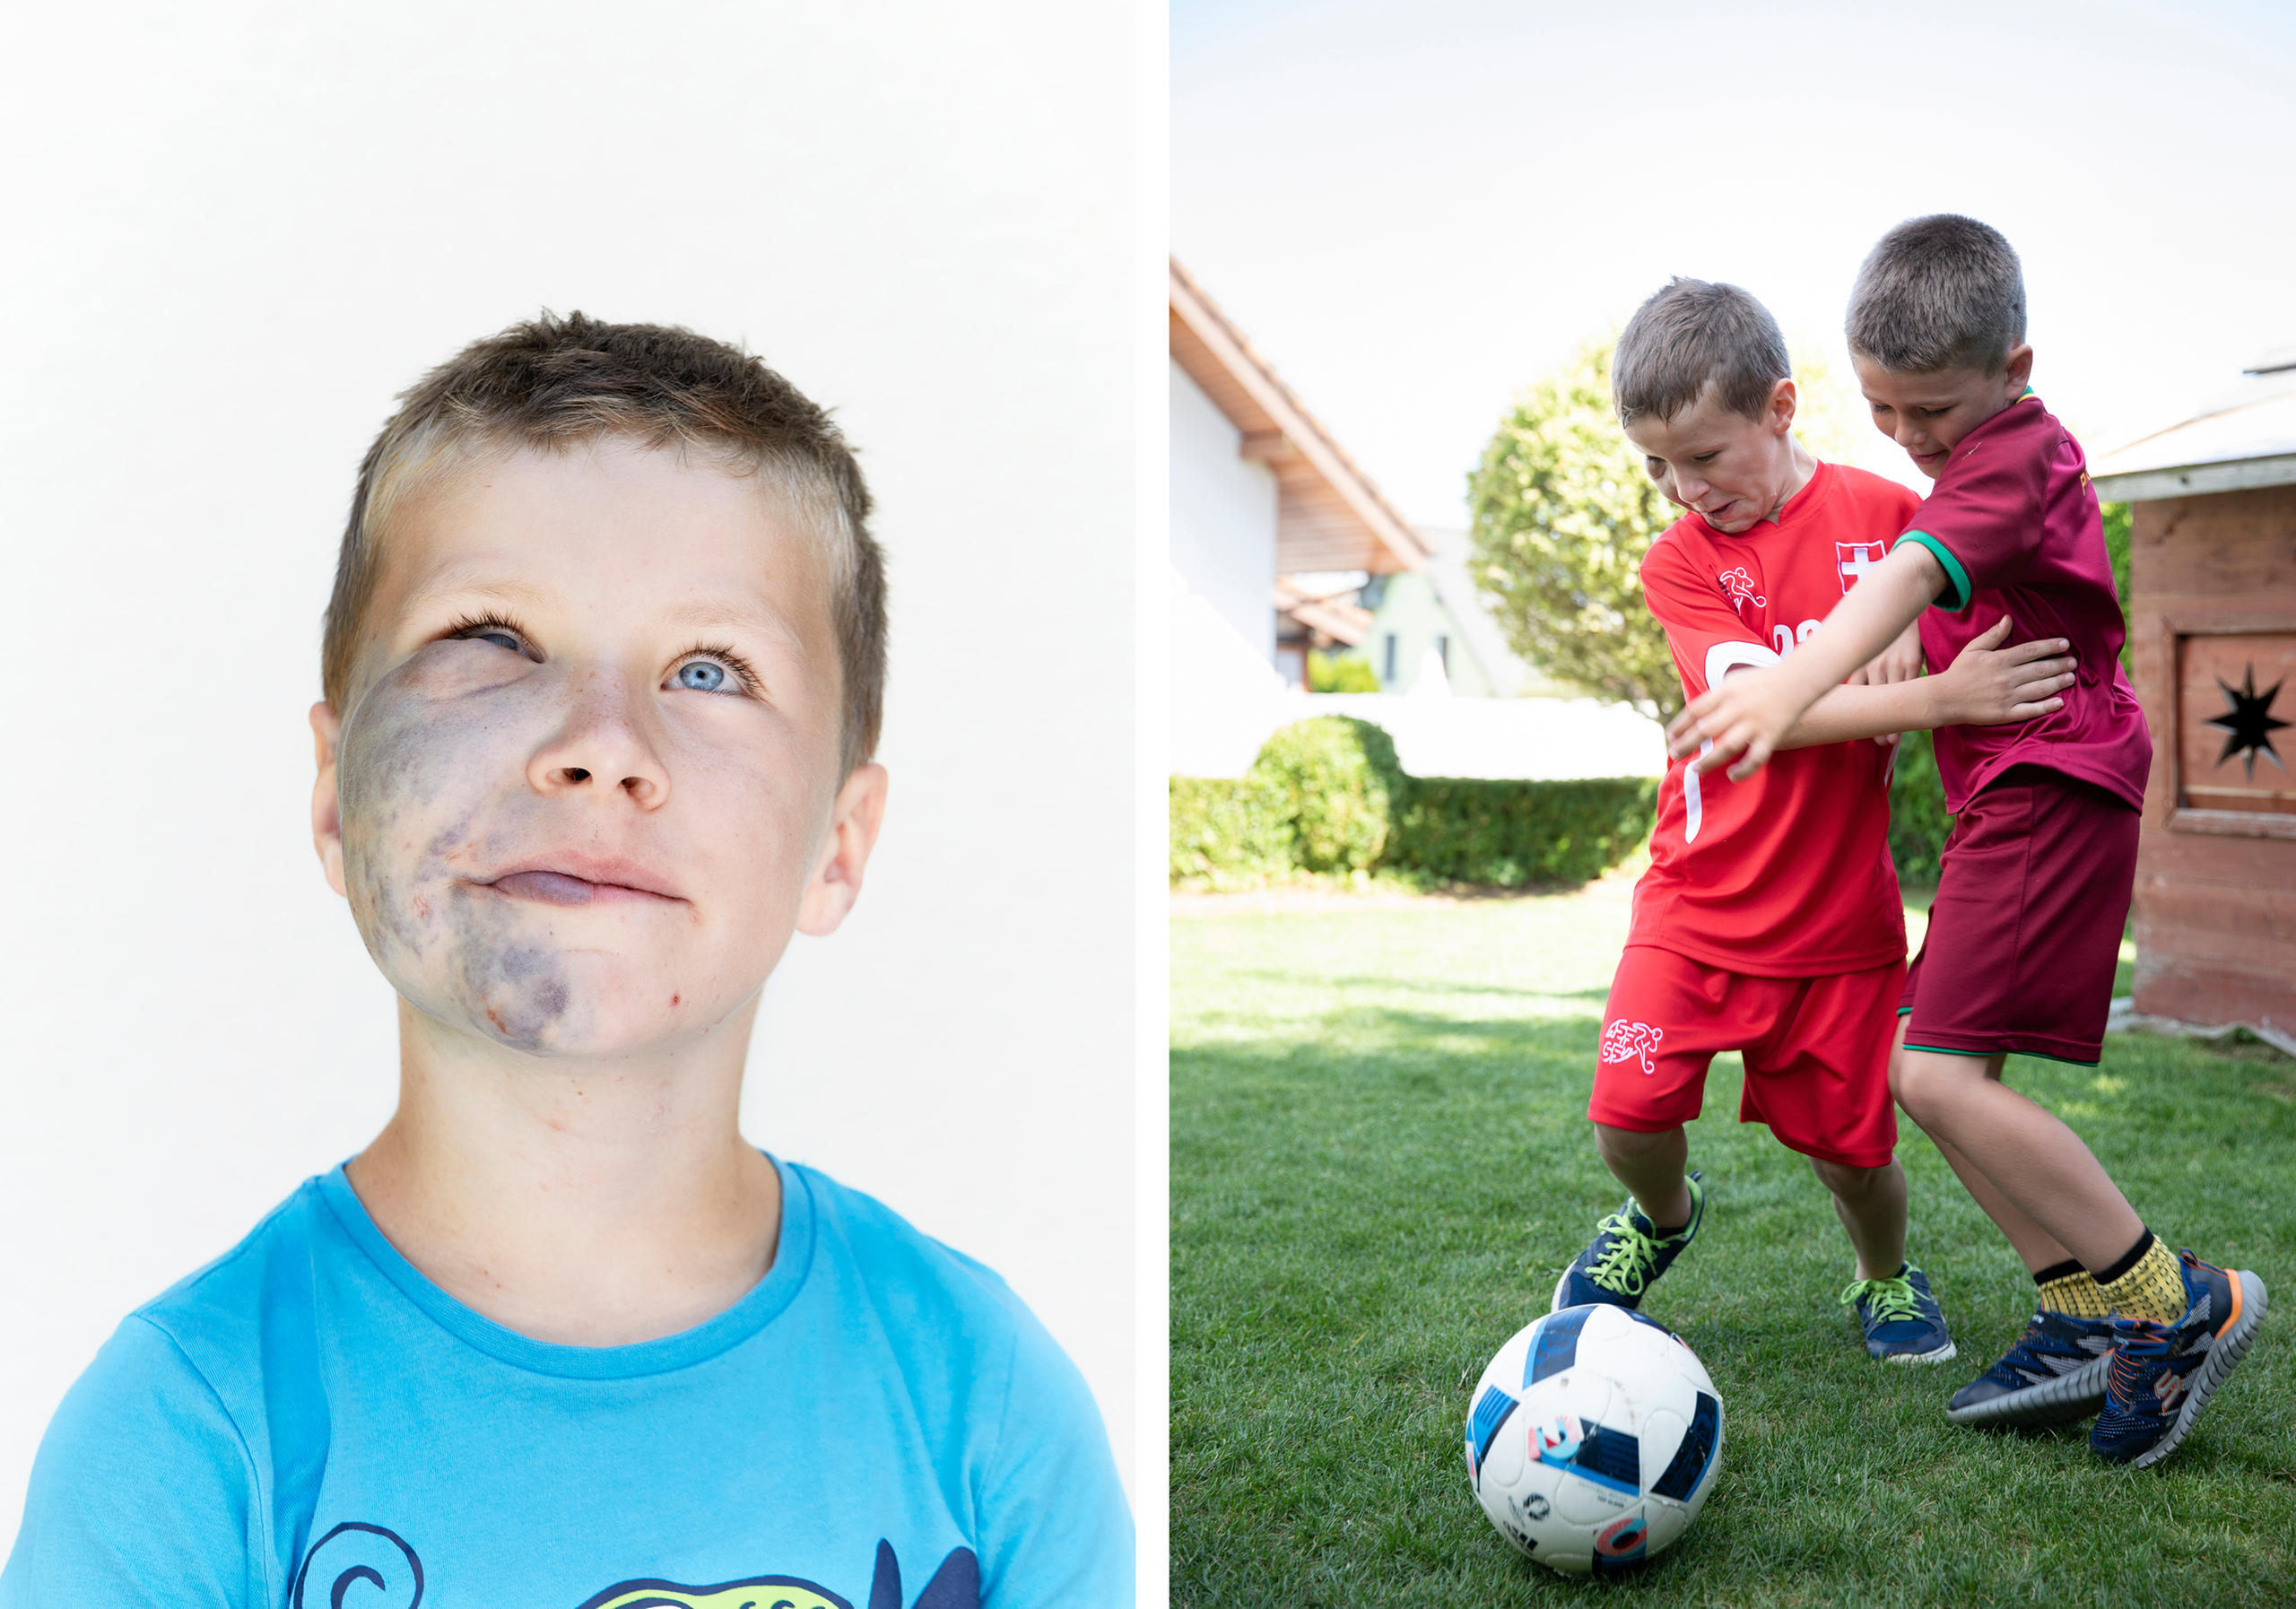 Pictures of a boy with severe skin lesions on his face